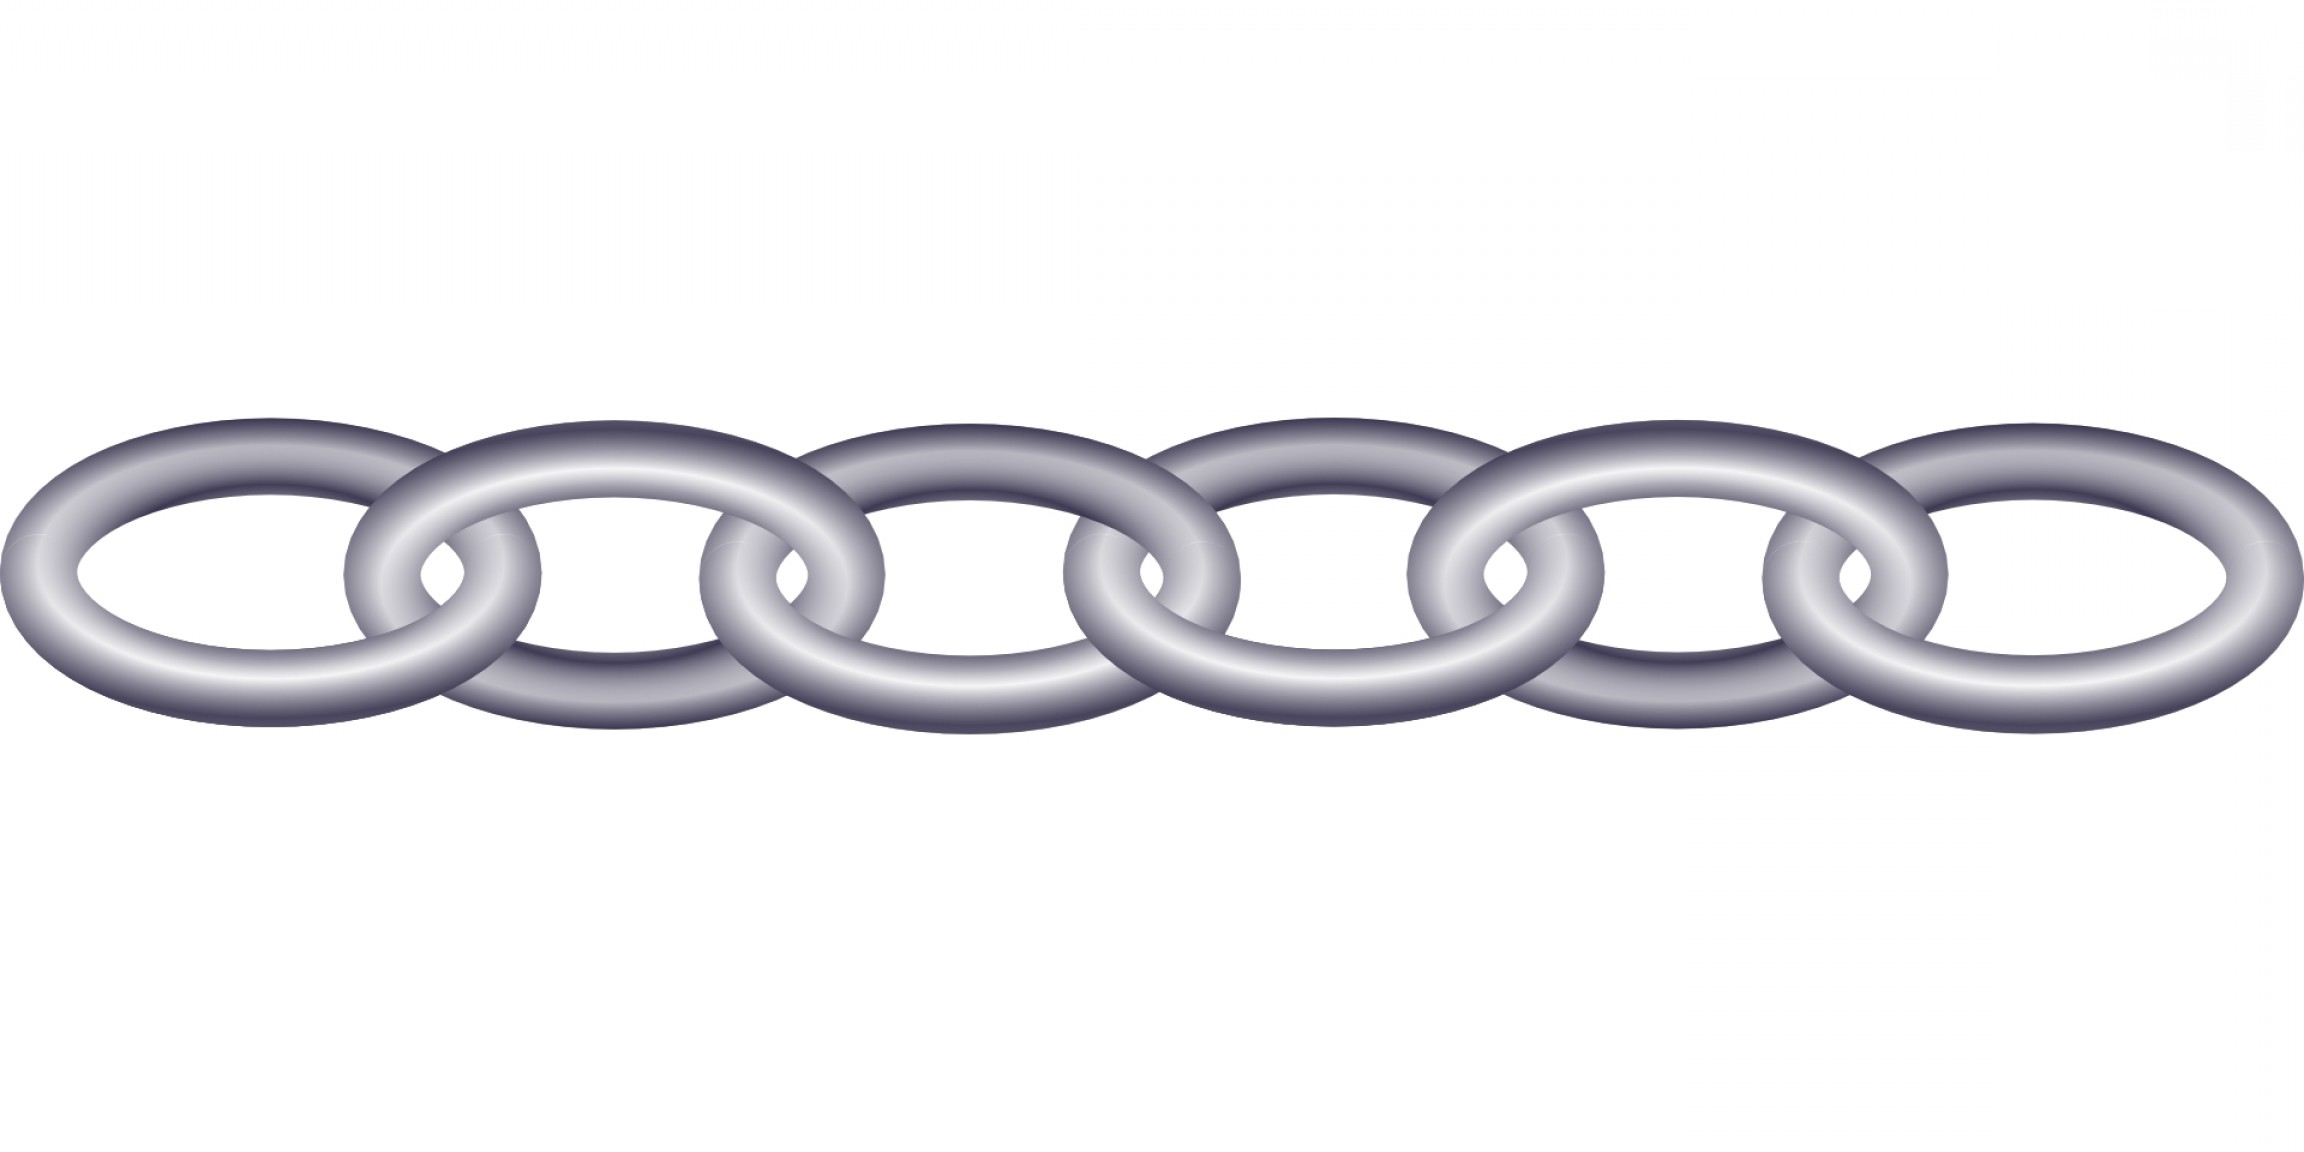 New gallery digital collection. Chain clipart border